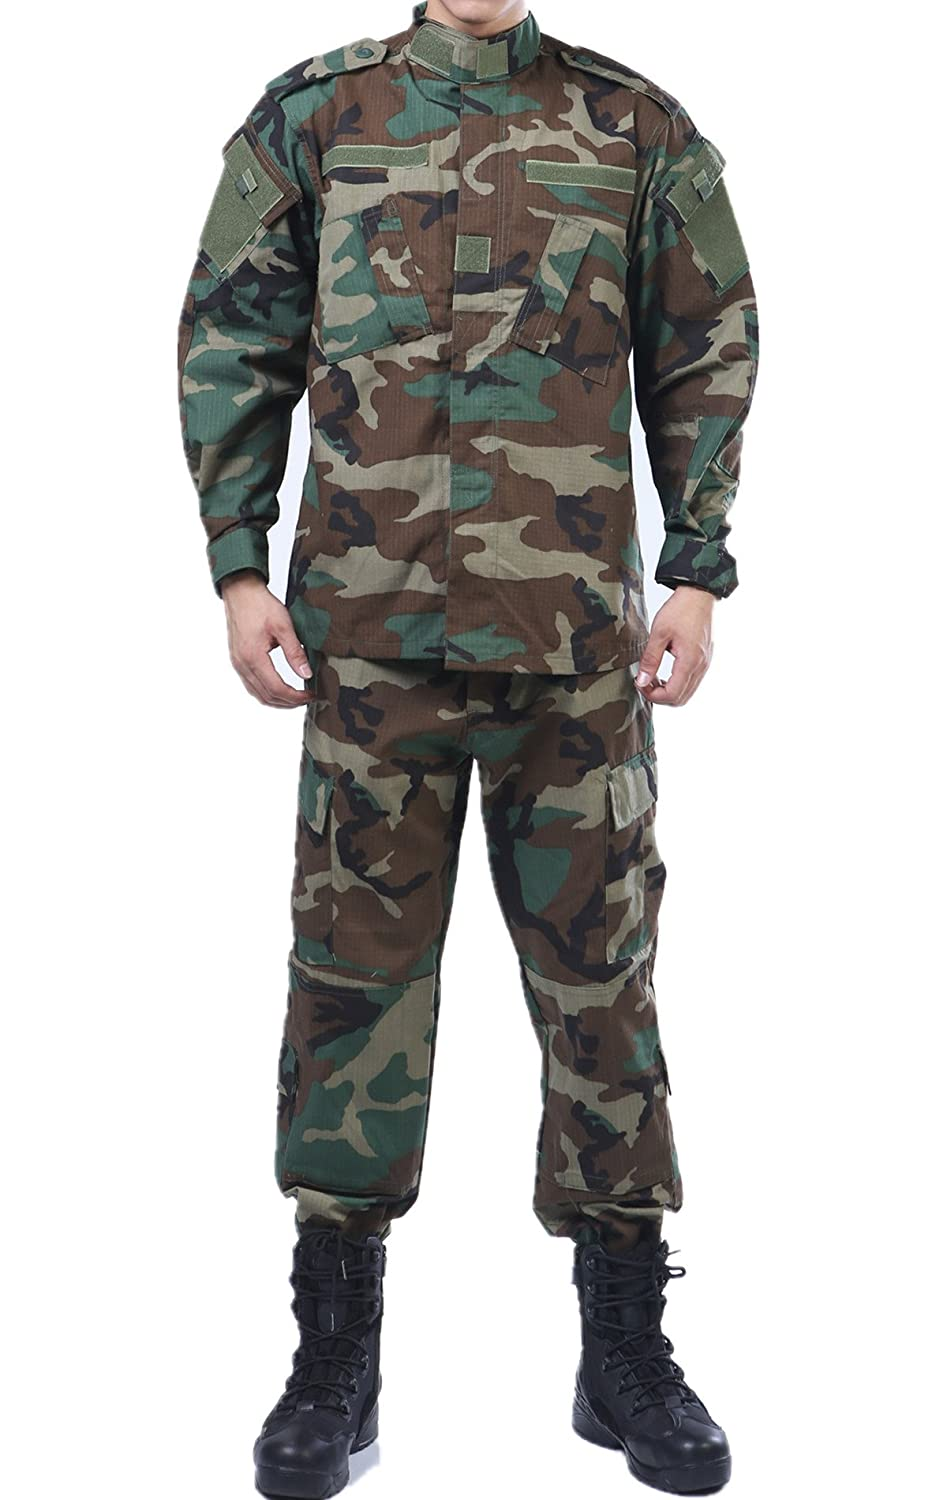 U.S. Army Woodland Camo BDU Combat Coat Pant Uniform Sets Military Jacket Shirt & Pants Suit